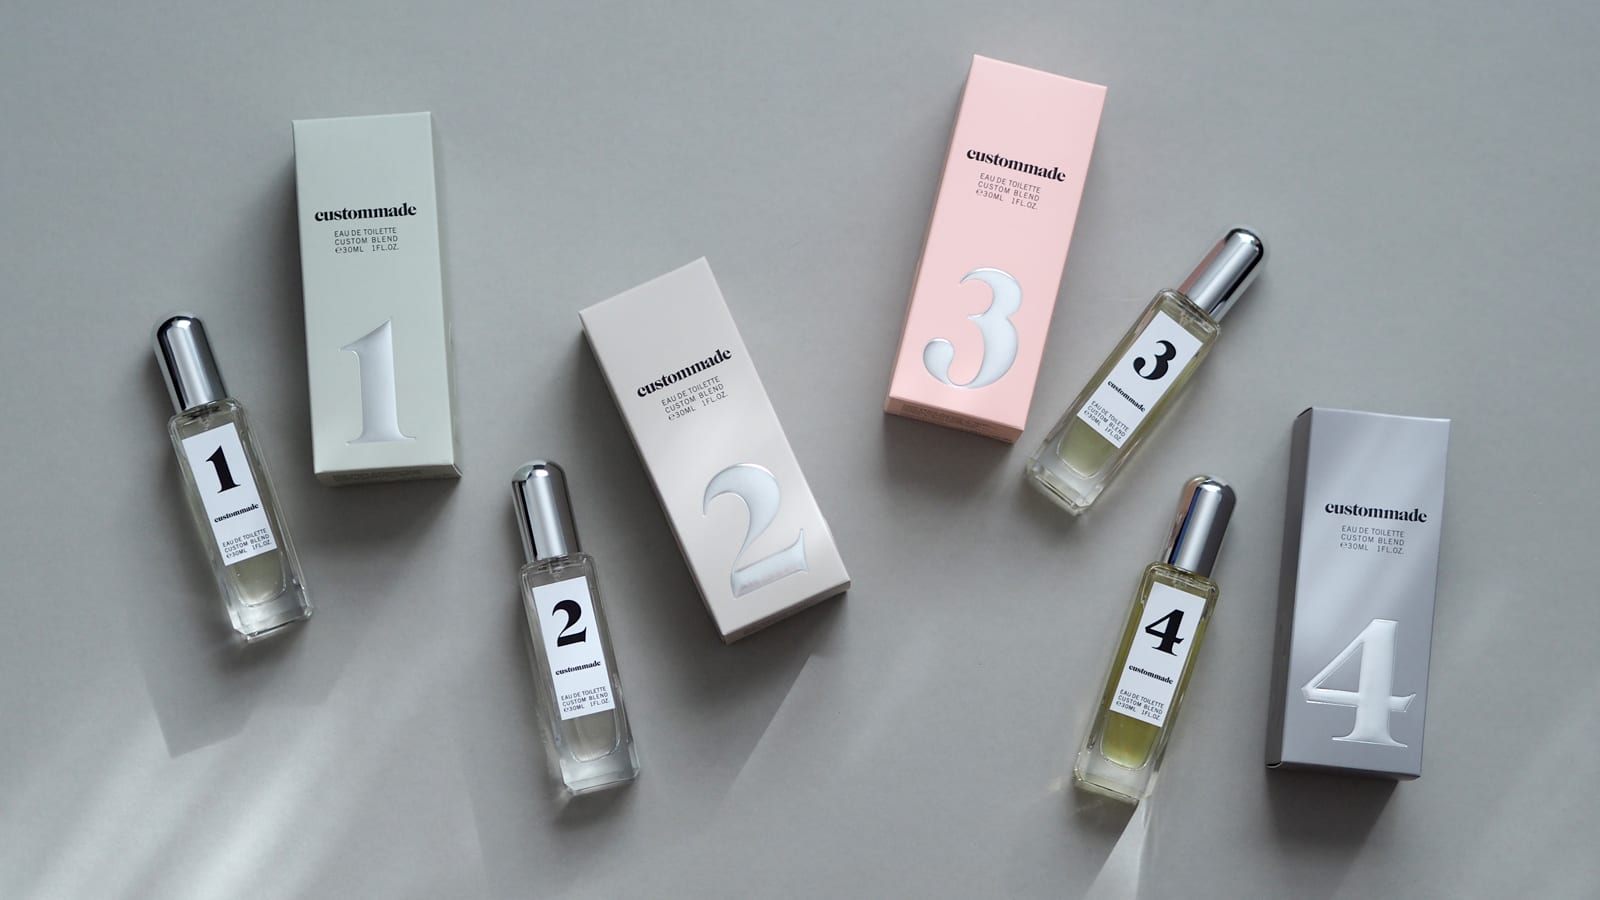 Style&Minimalism | Beauty | Custommade Mix & Match Fragrance